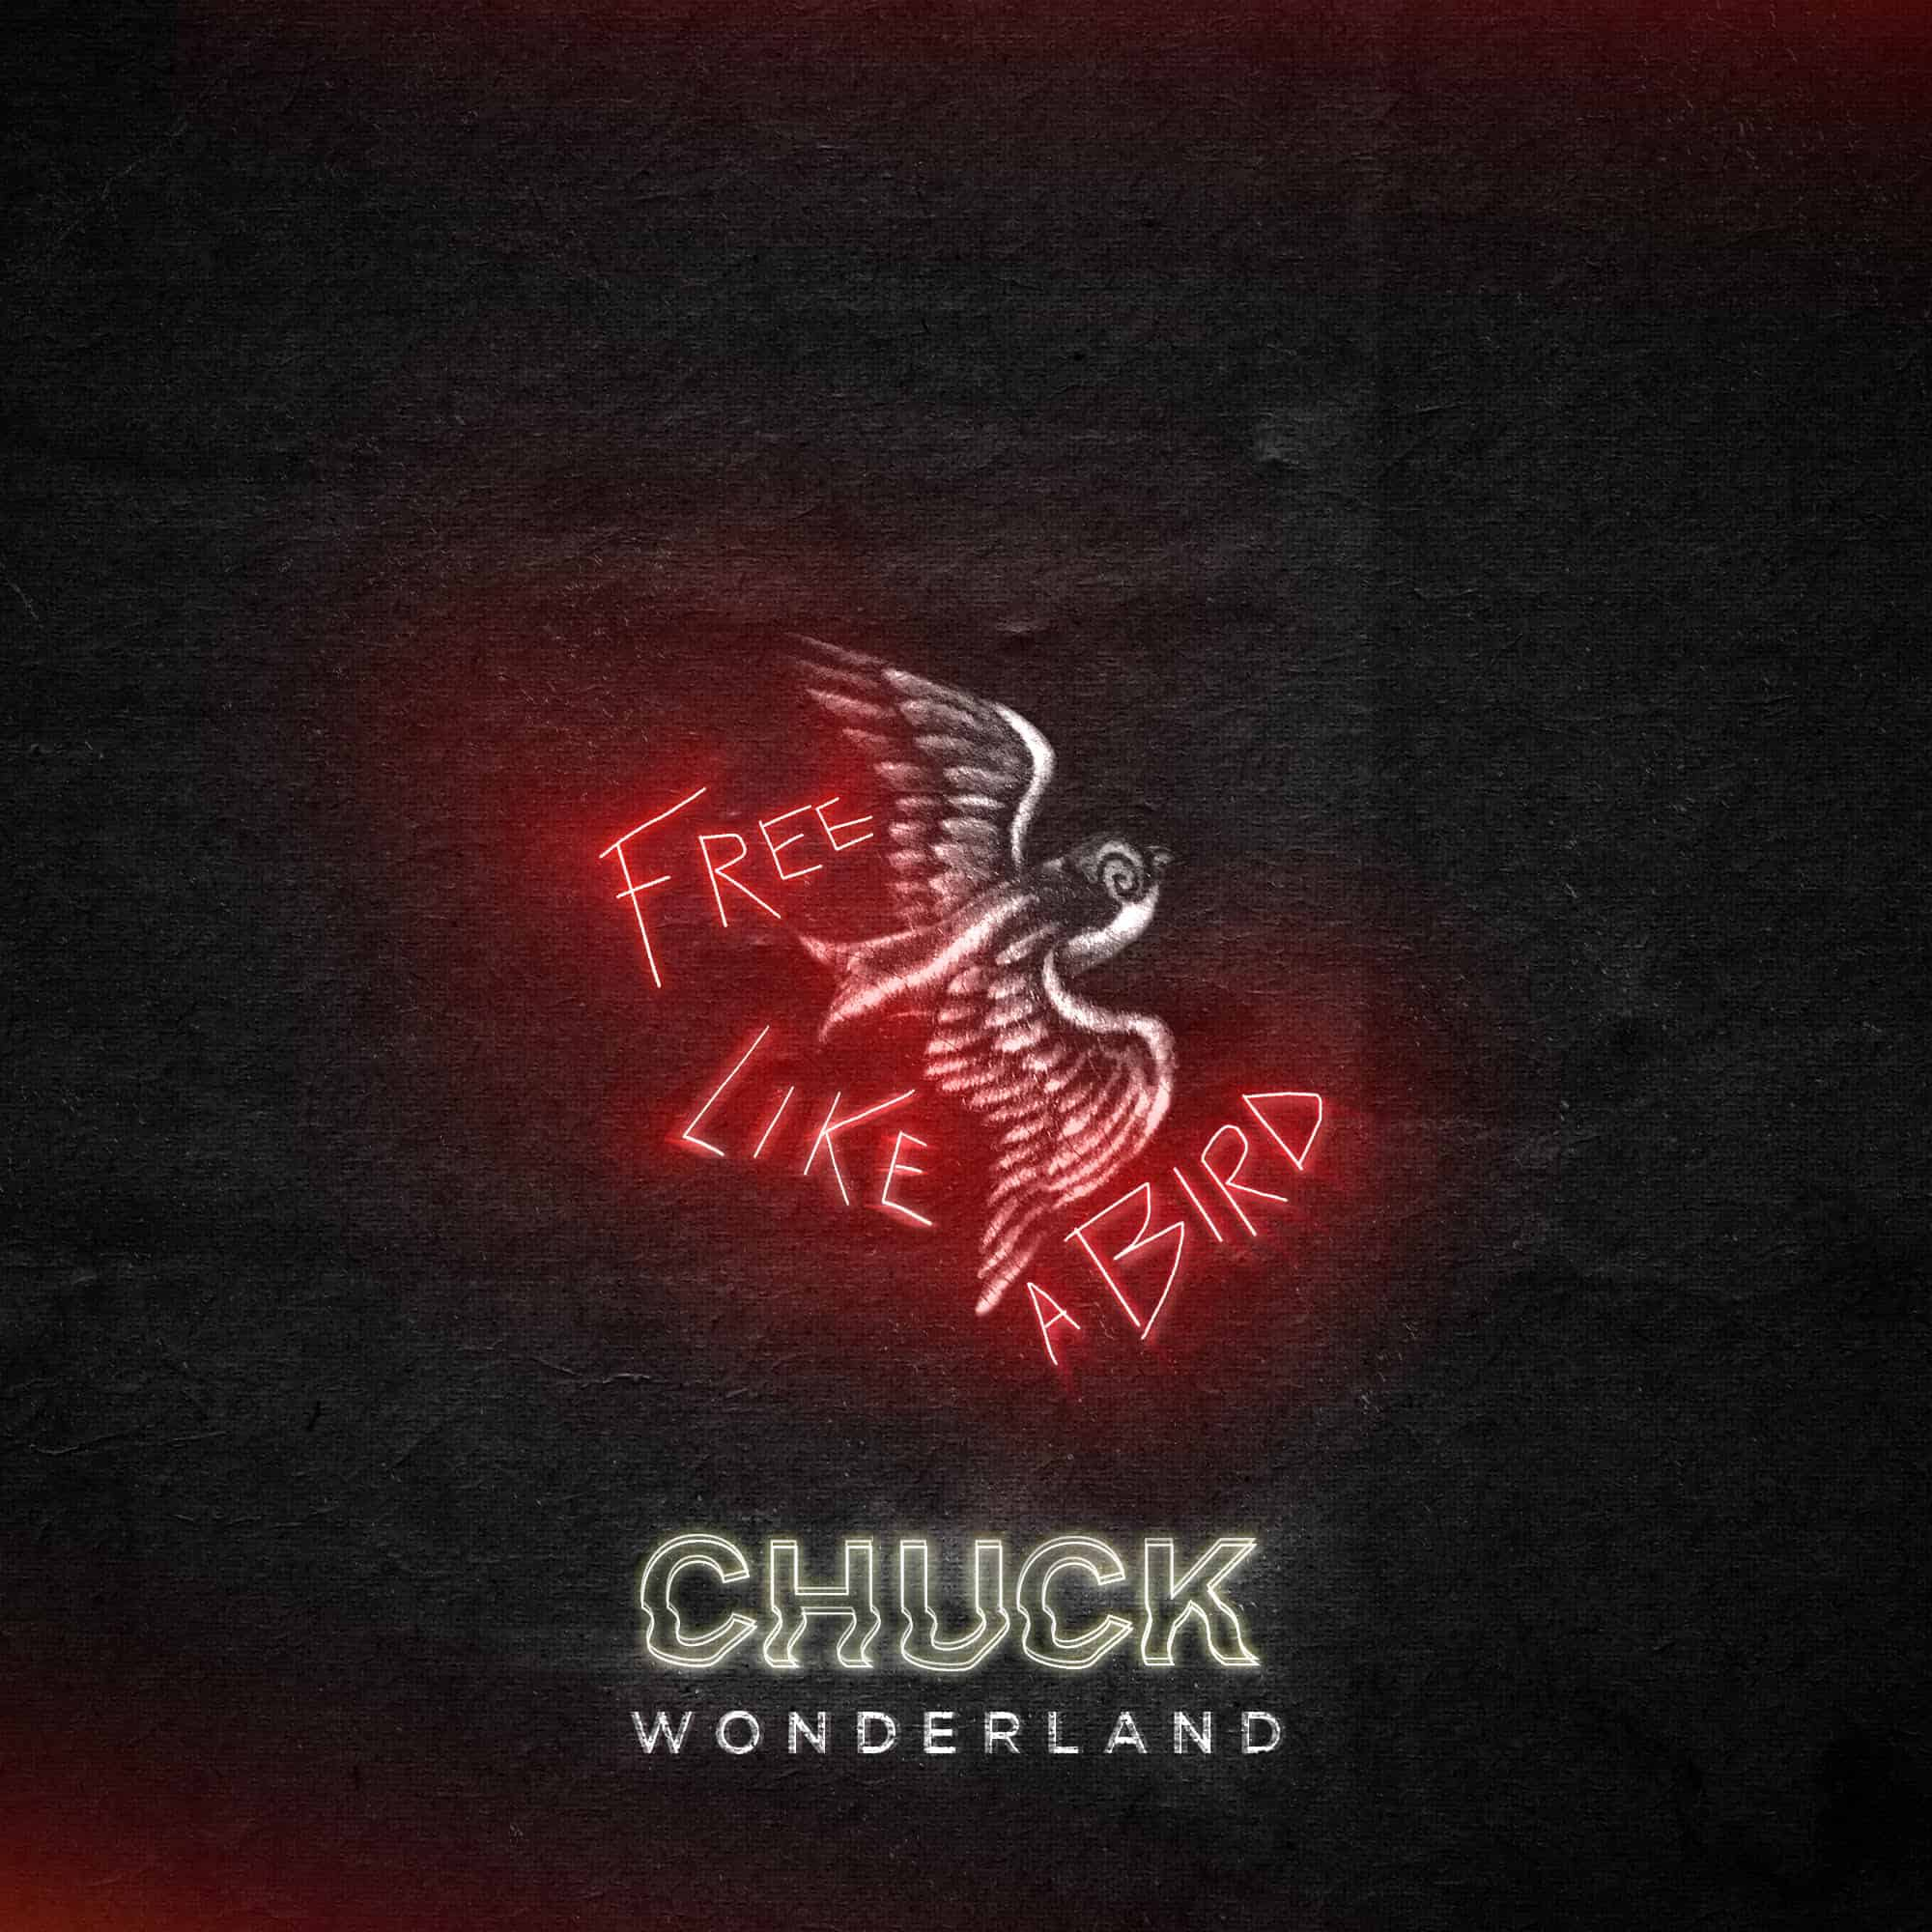 Chuck Wonderland release 'Free Like A Bird'